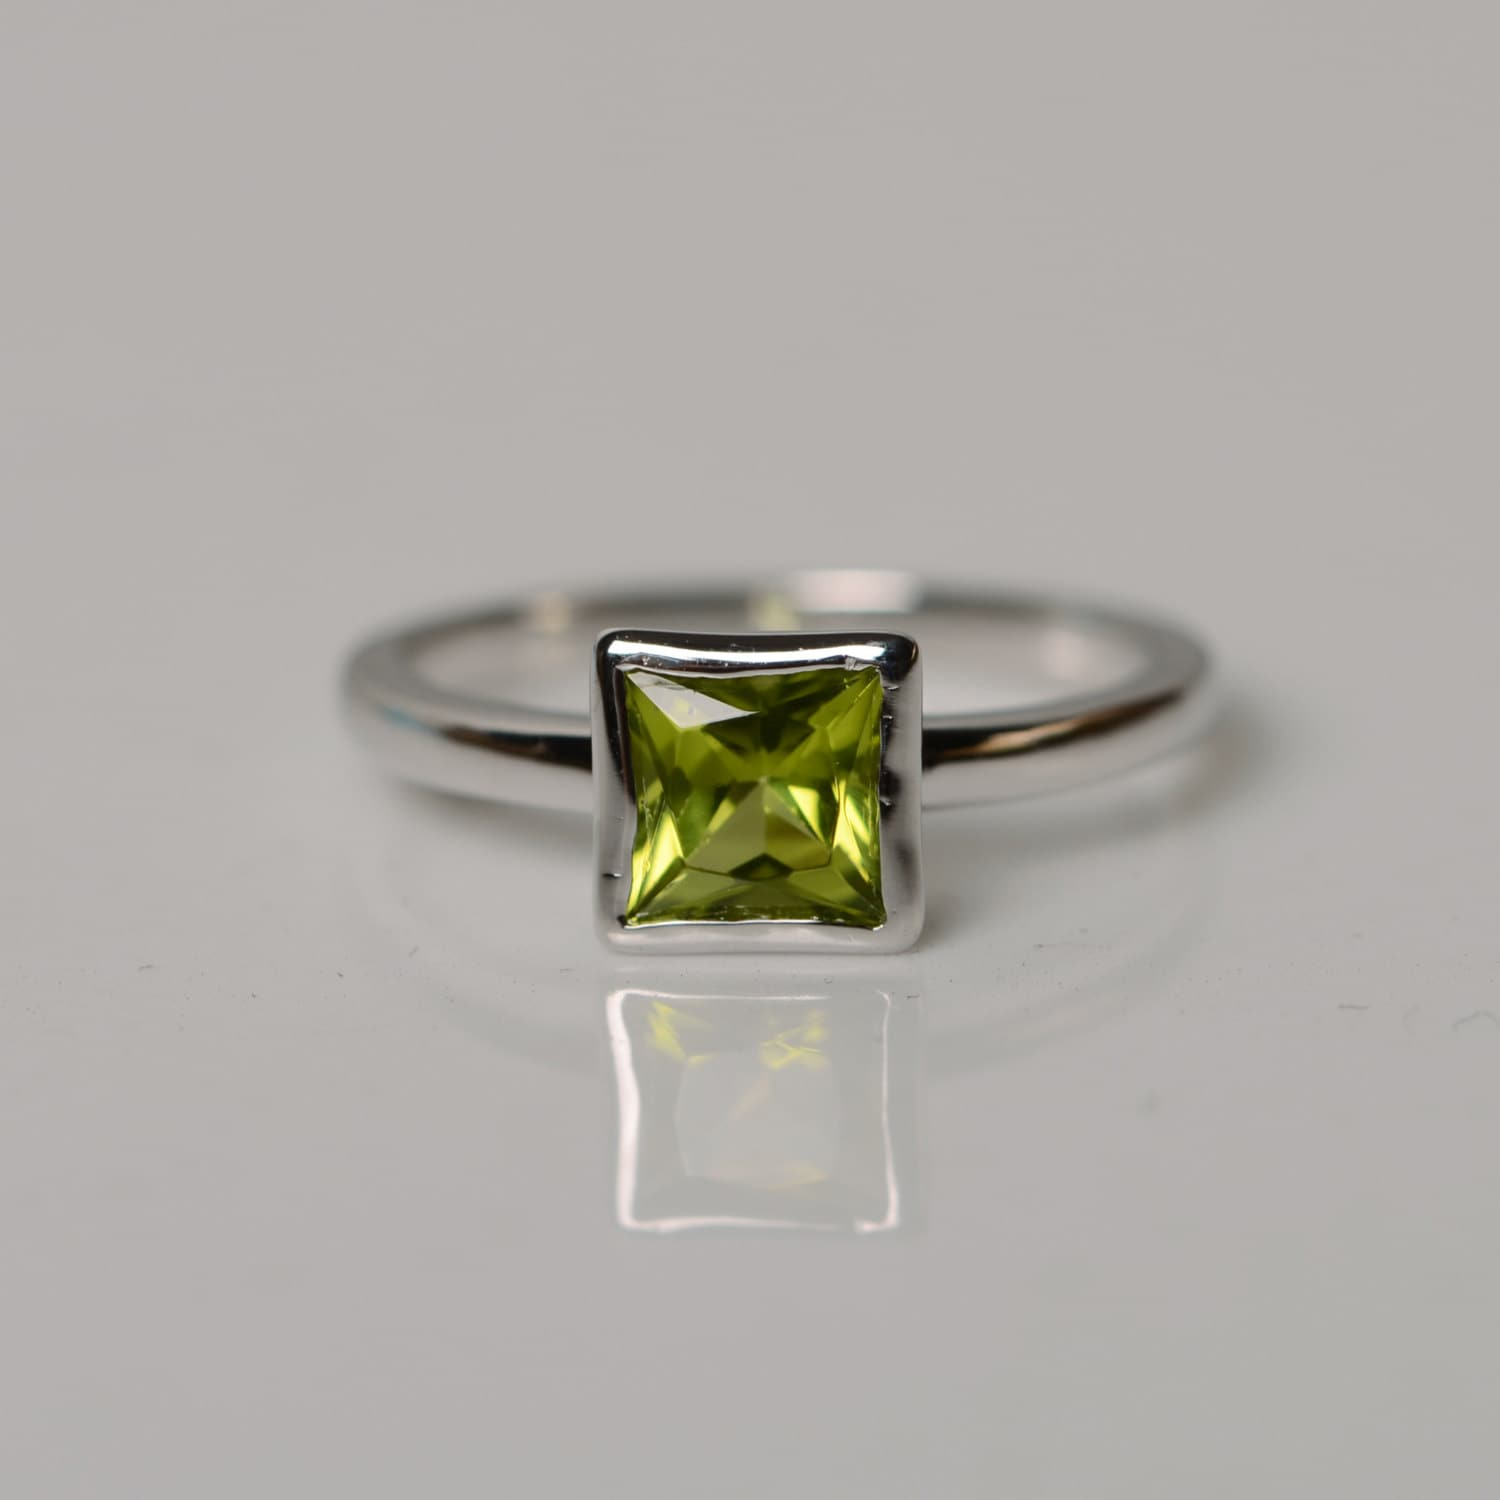 recycled gemstone silver genuine rings by engagement etsy on ring jewelrybymatt round sterling birthstone august peridot pin